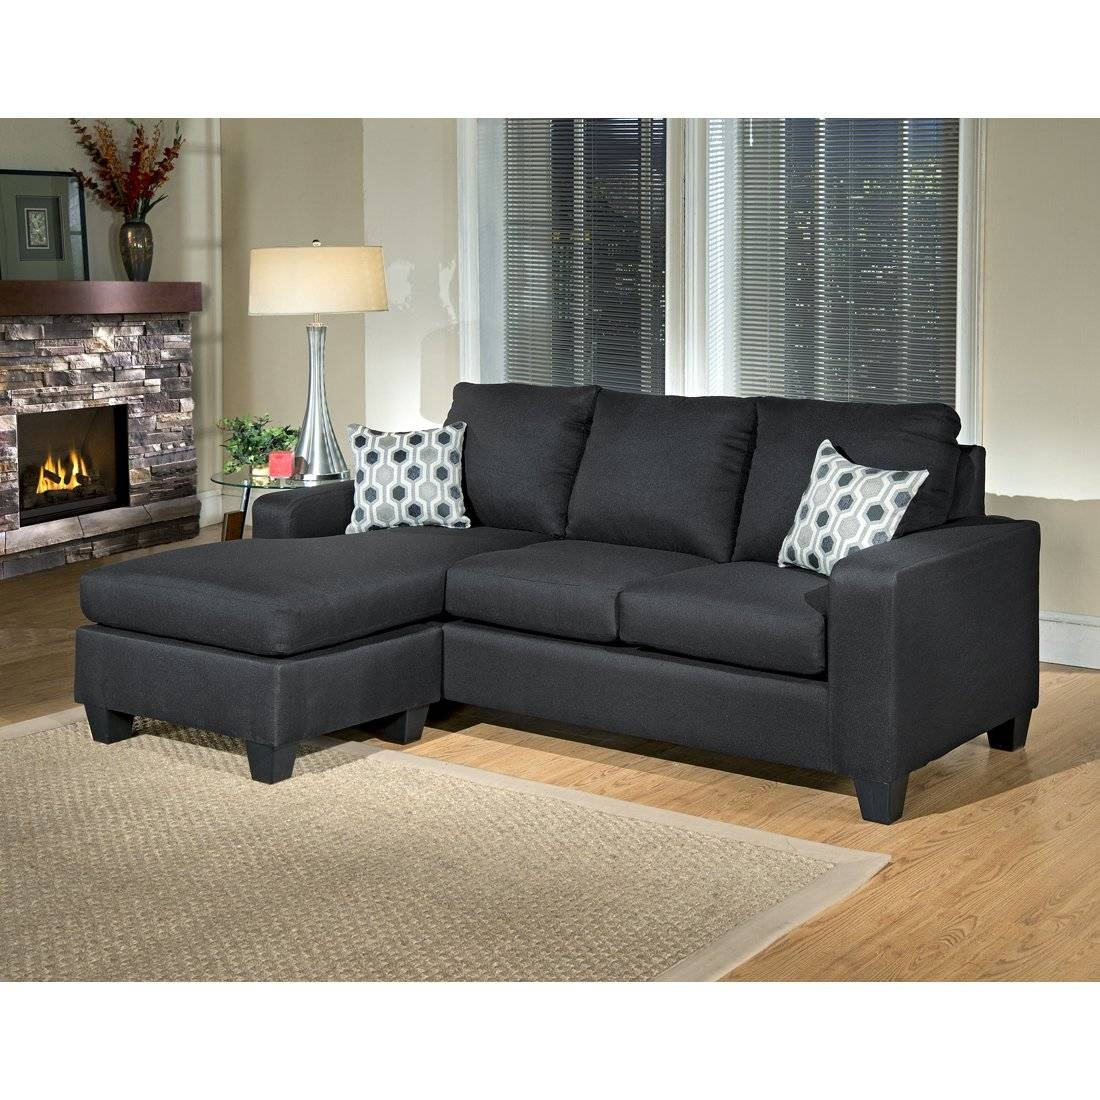 Furniture Home : Sectional Sofa Comfortable New Model Elegant 2017 with Elegant Sectional Sofa (Image 17 of 25)